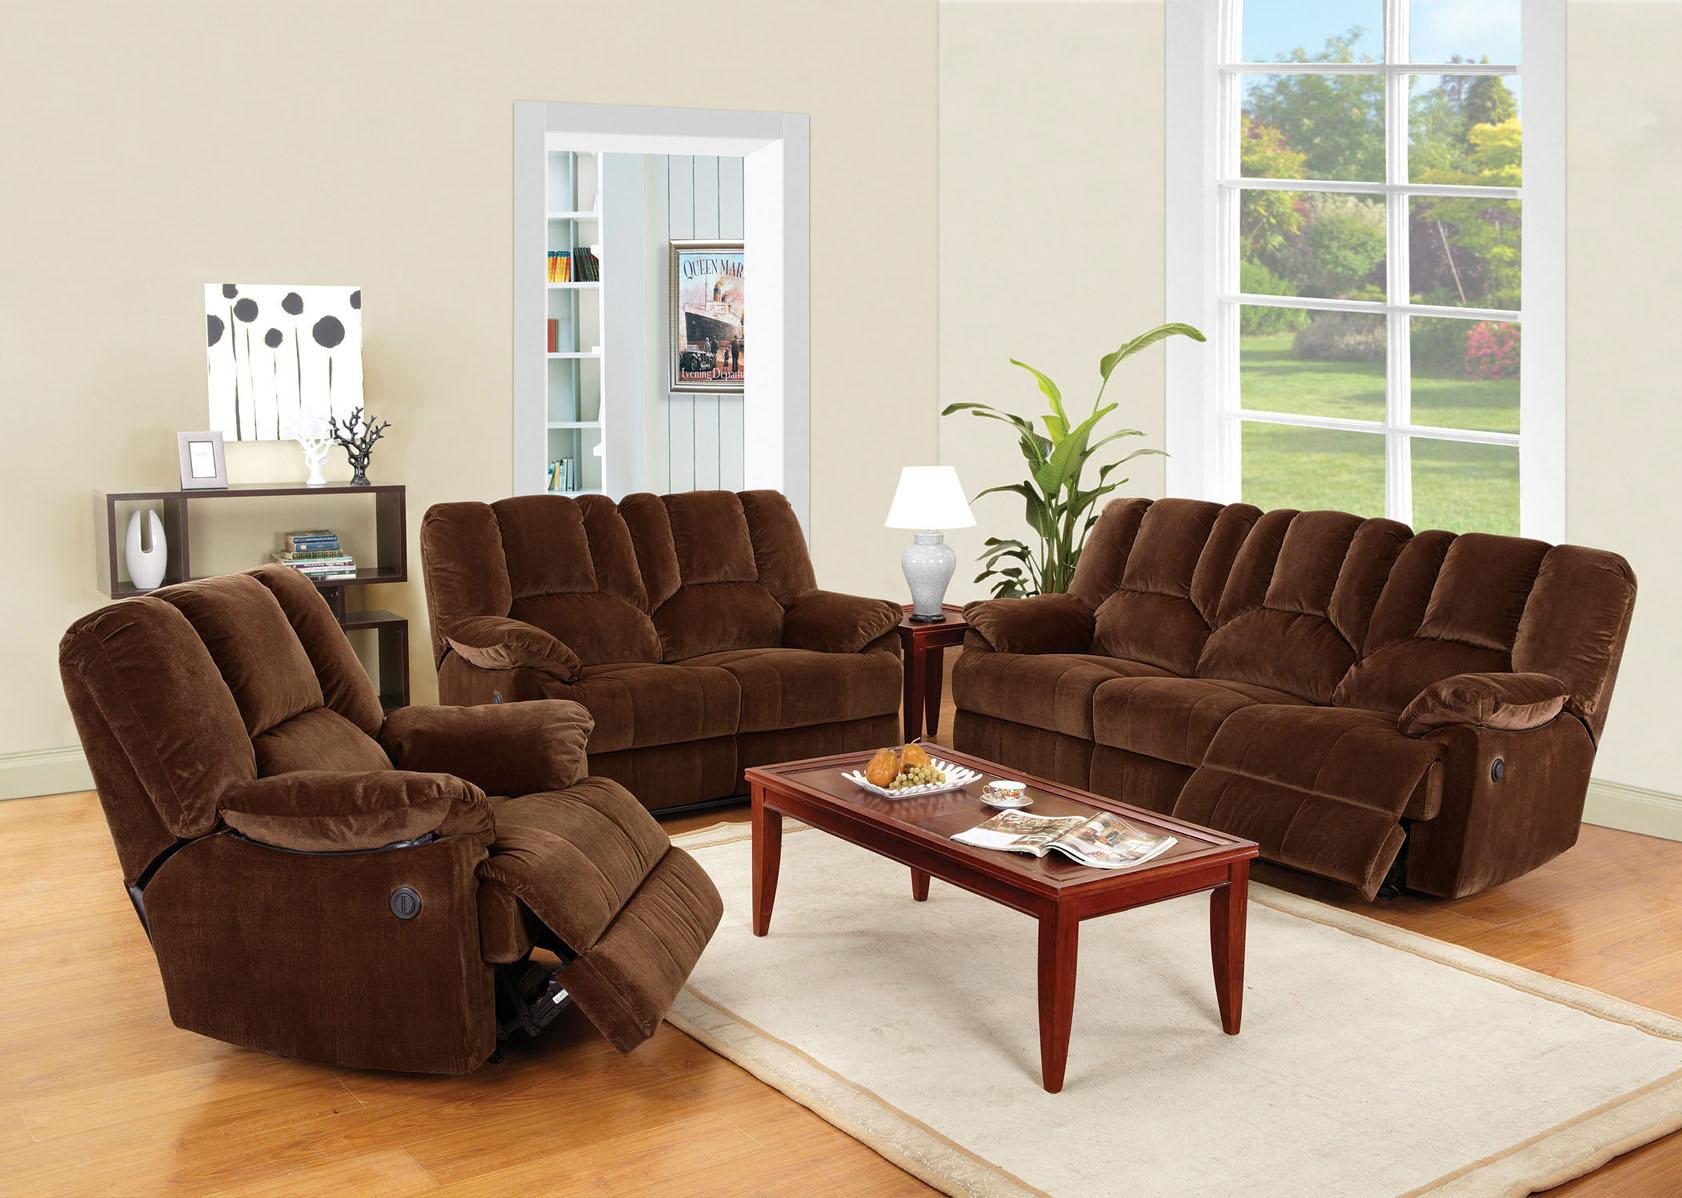 Acme obert 3 piece living room set in brown for 3 piece living room set cheap